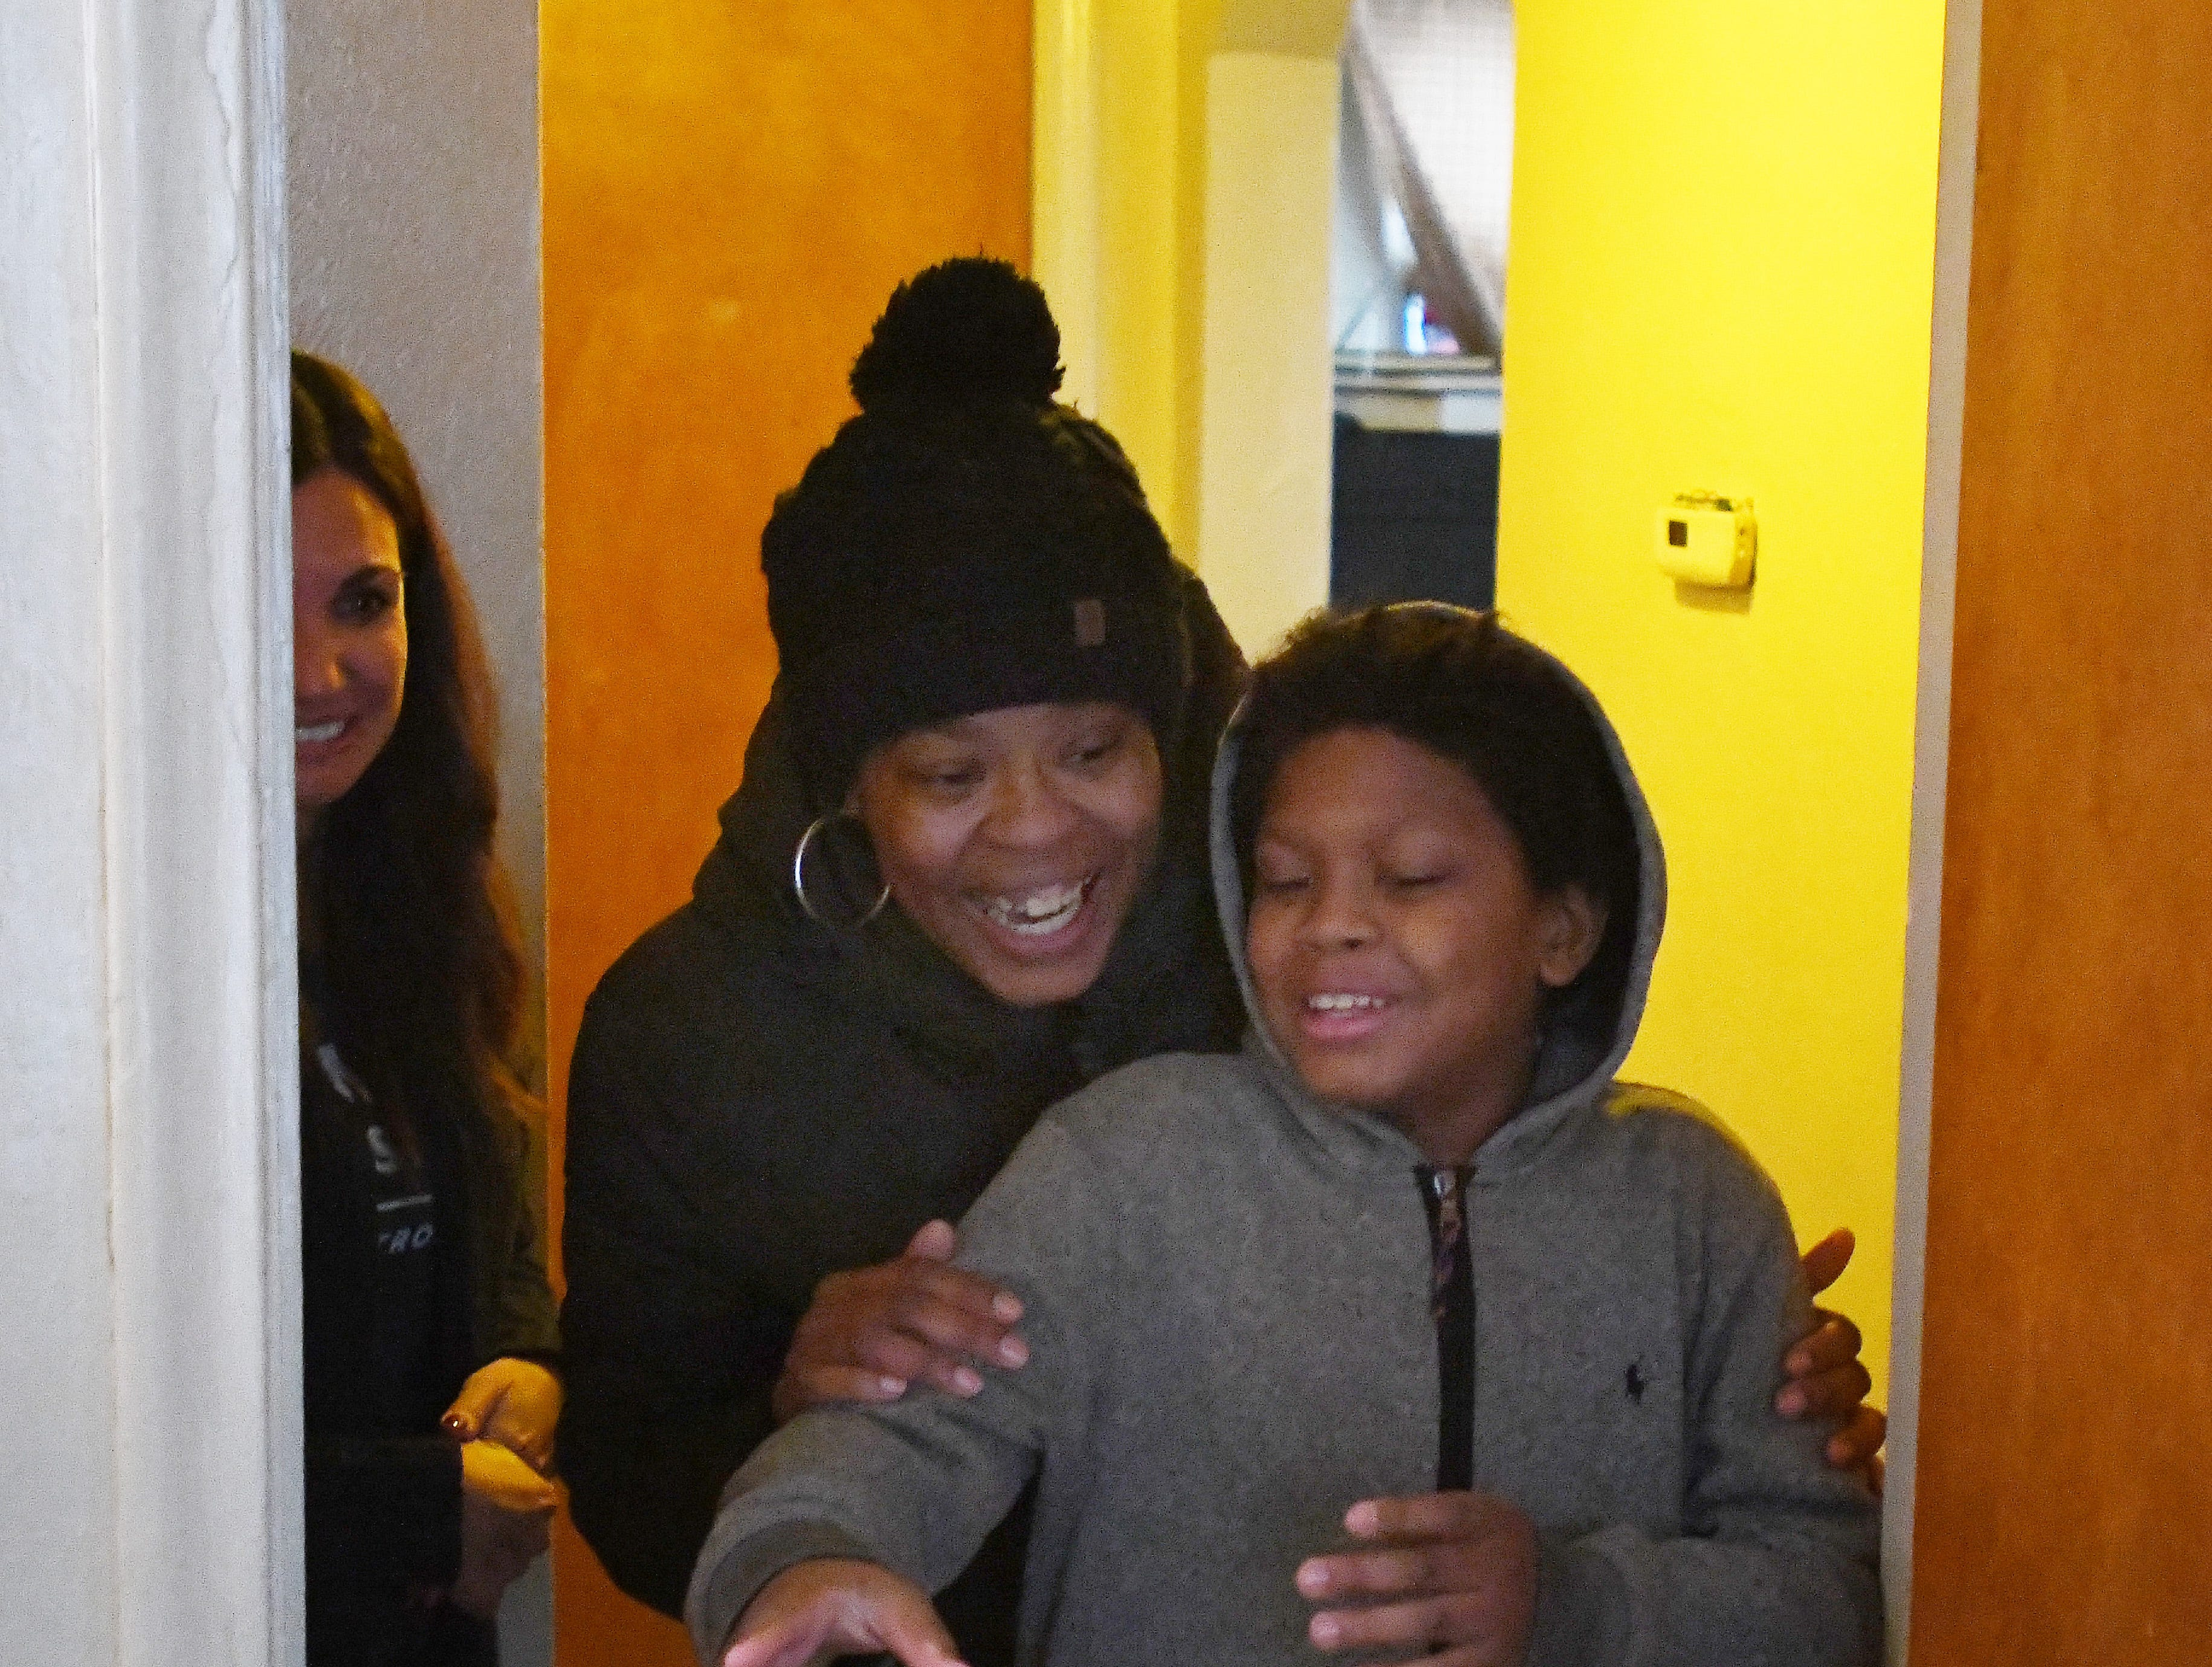 Jamiliah Powers-McCoy and her son Jai'Vonte, 12, enter his newly furnished room to see what the Humble Design team did to jazz it up.